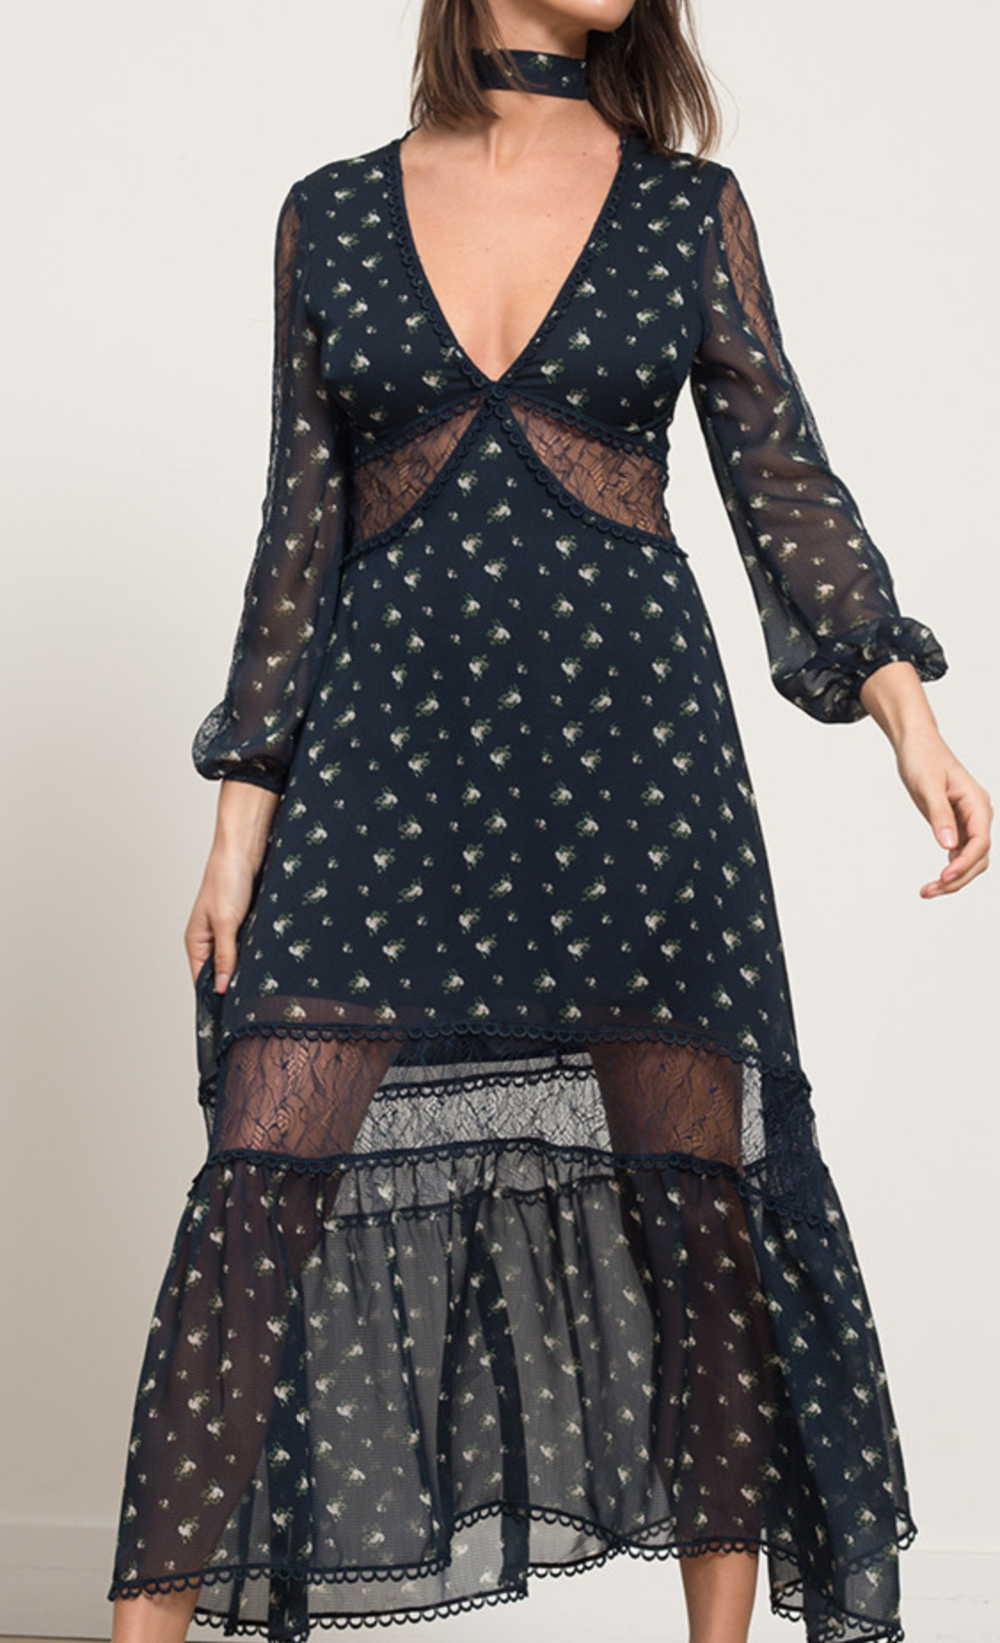 Sonya Lace Dress-click here